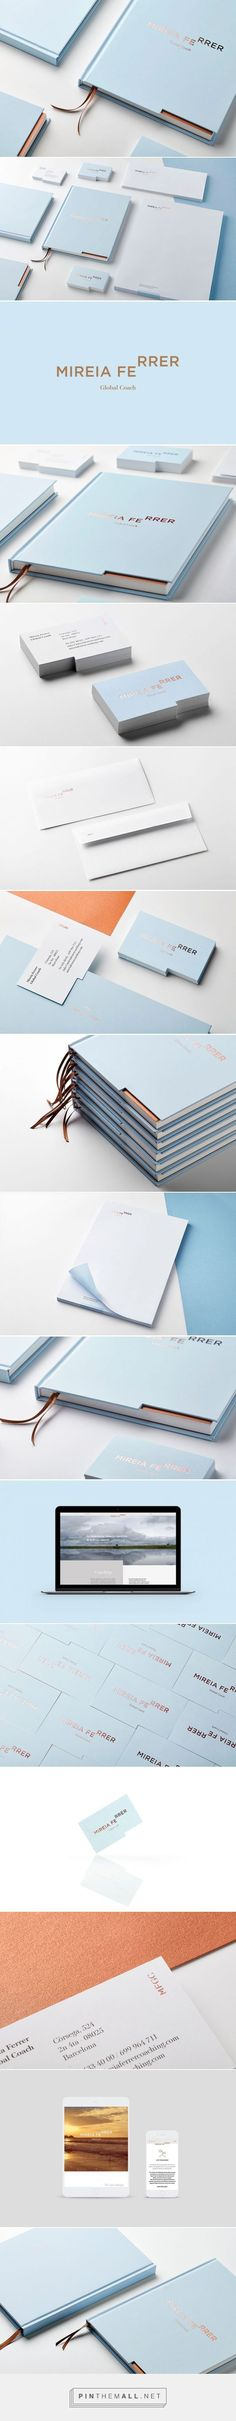 Lovely Blue Branding Design